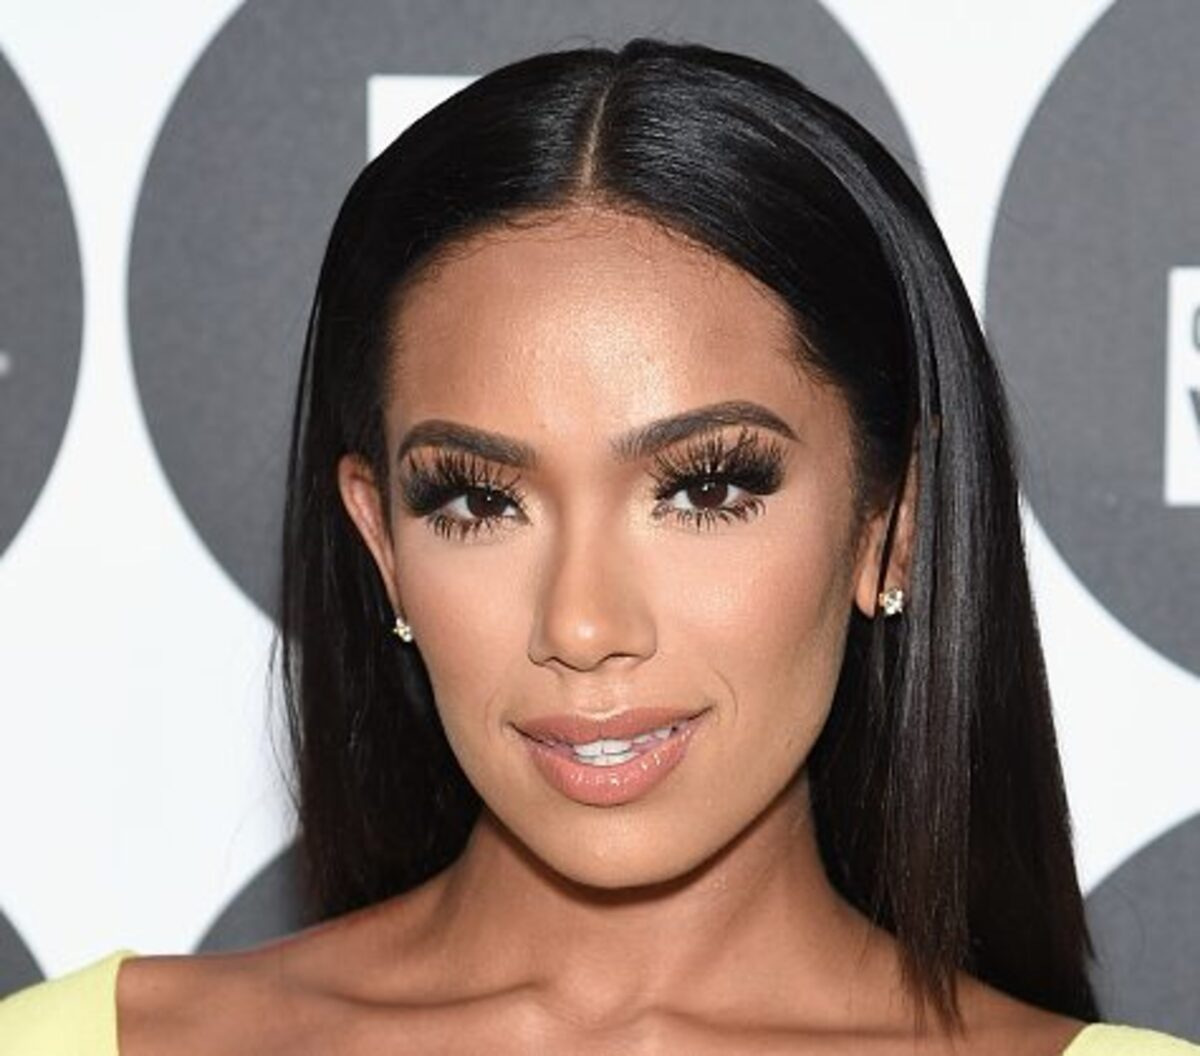 """erica-mena-drops-new-merch-and-impresses-fans-check-out-her-racy-looks"""